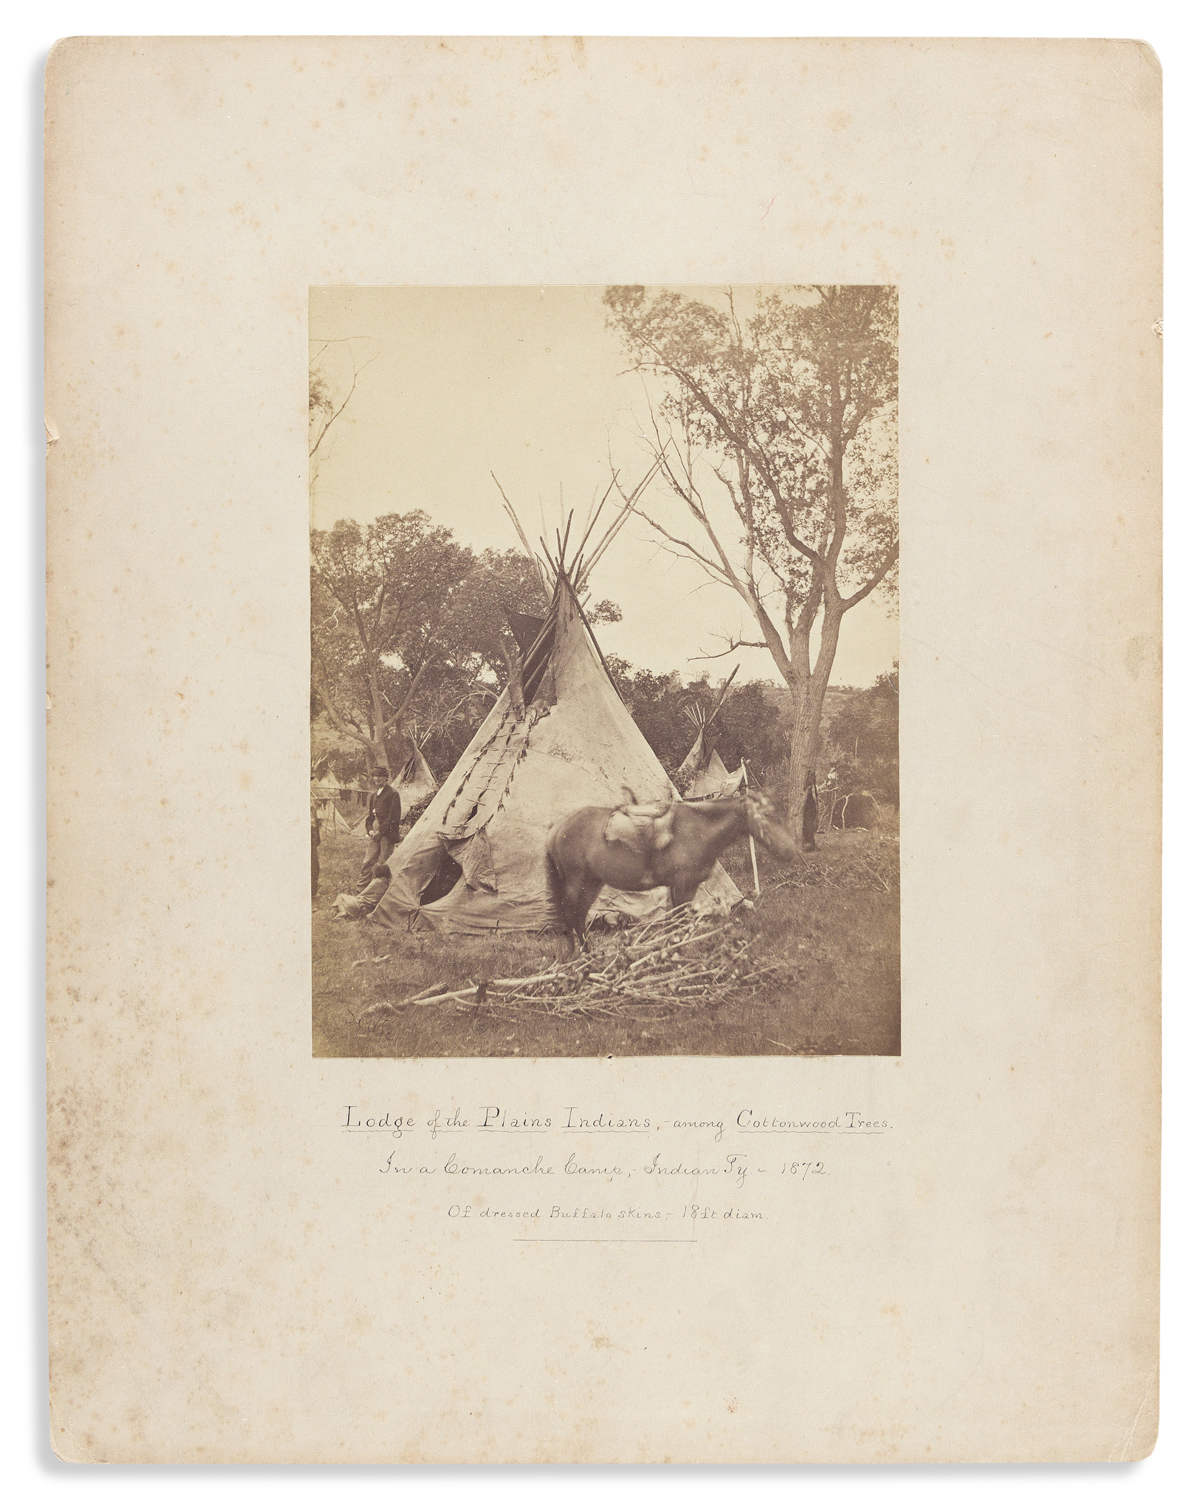 (AMERICAN INDIANS--PHOTOGRAPHS.) William Soule. Lodge of the Plains Indians among the Cottonwood Trees in a Comanche Camp . . .